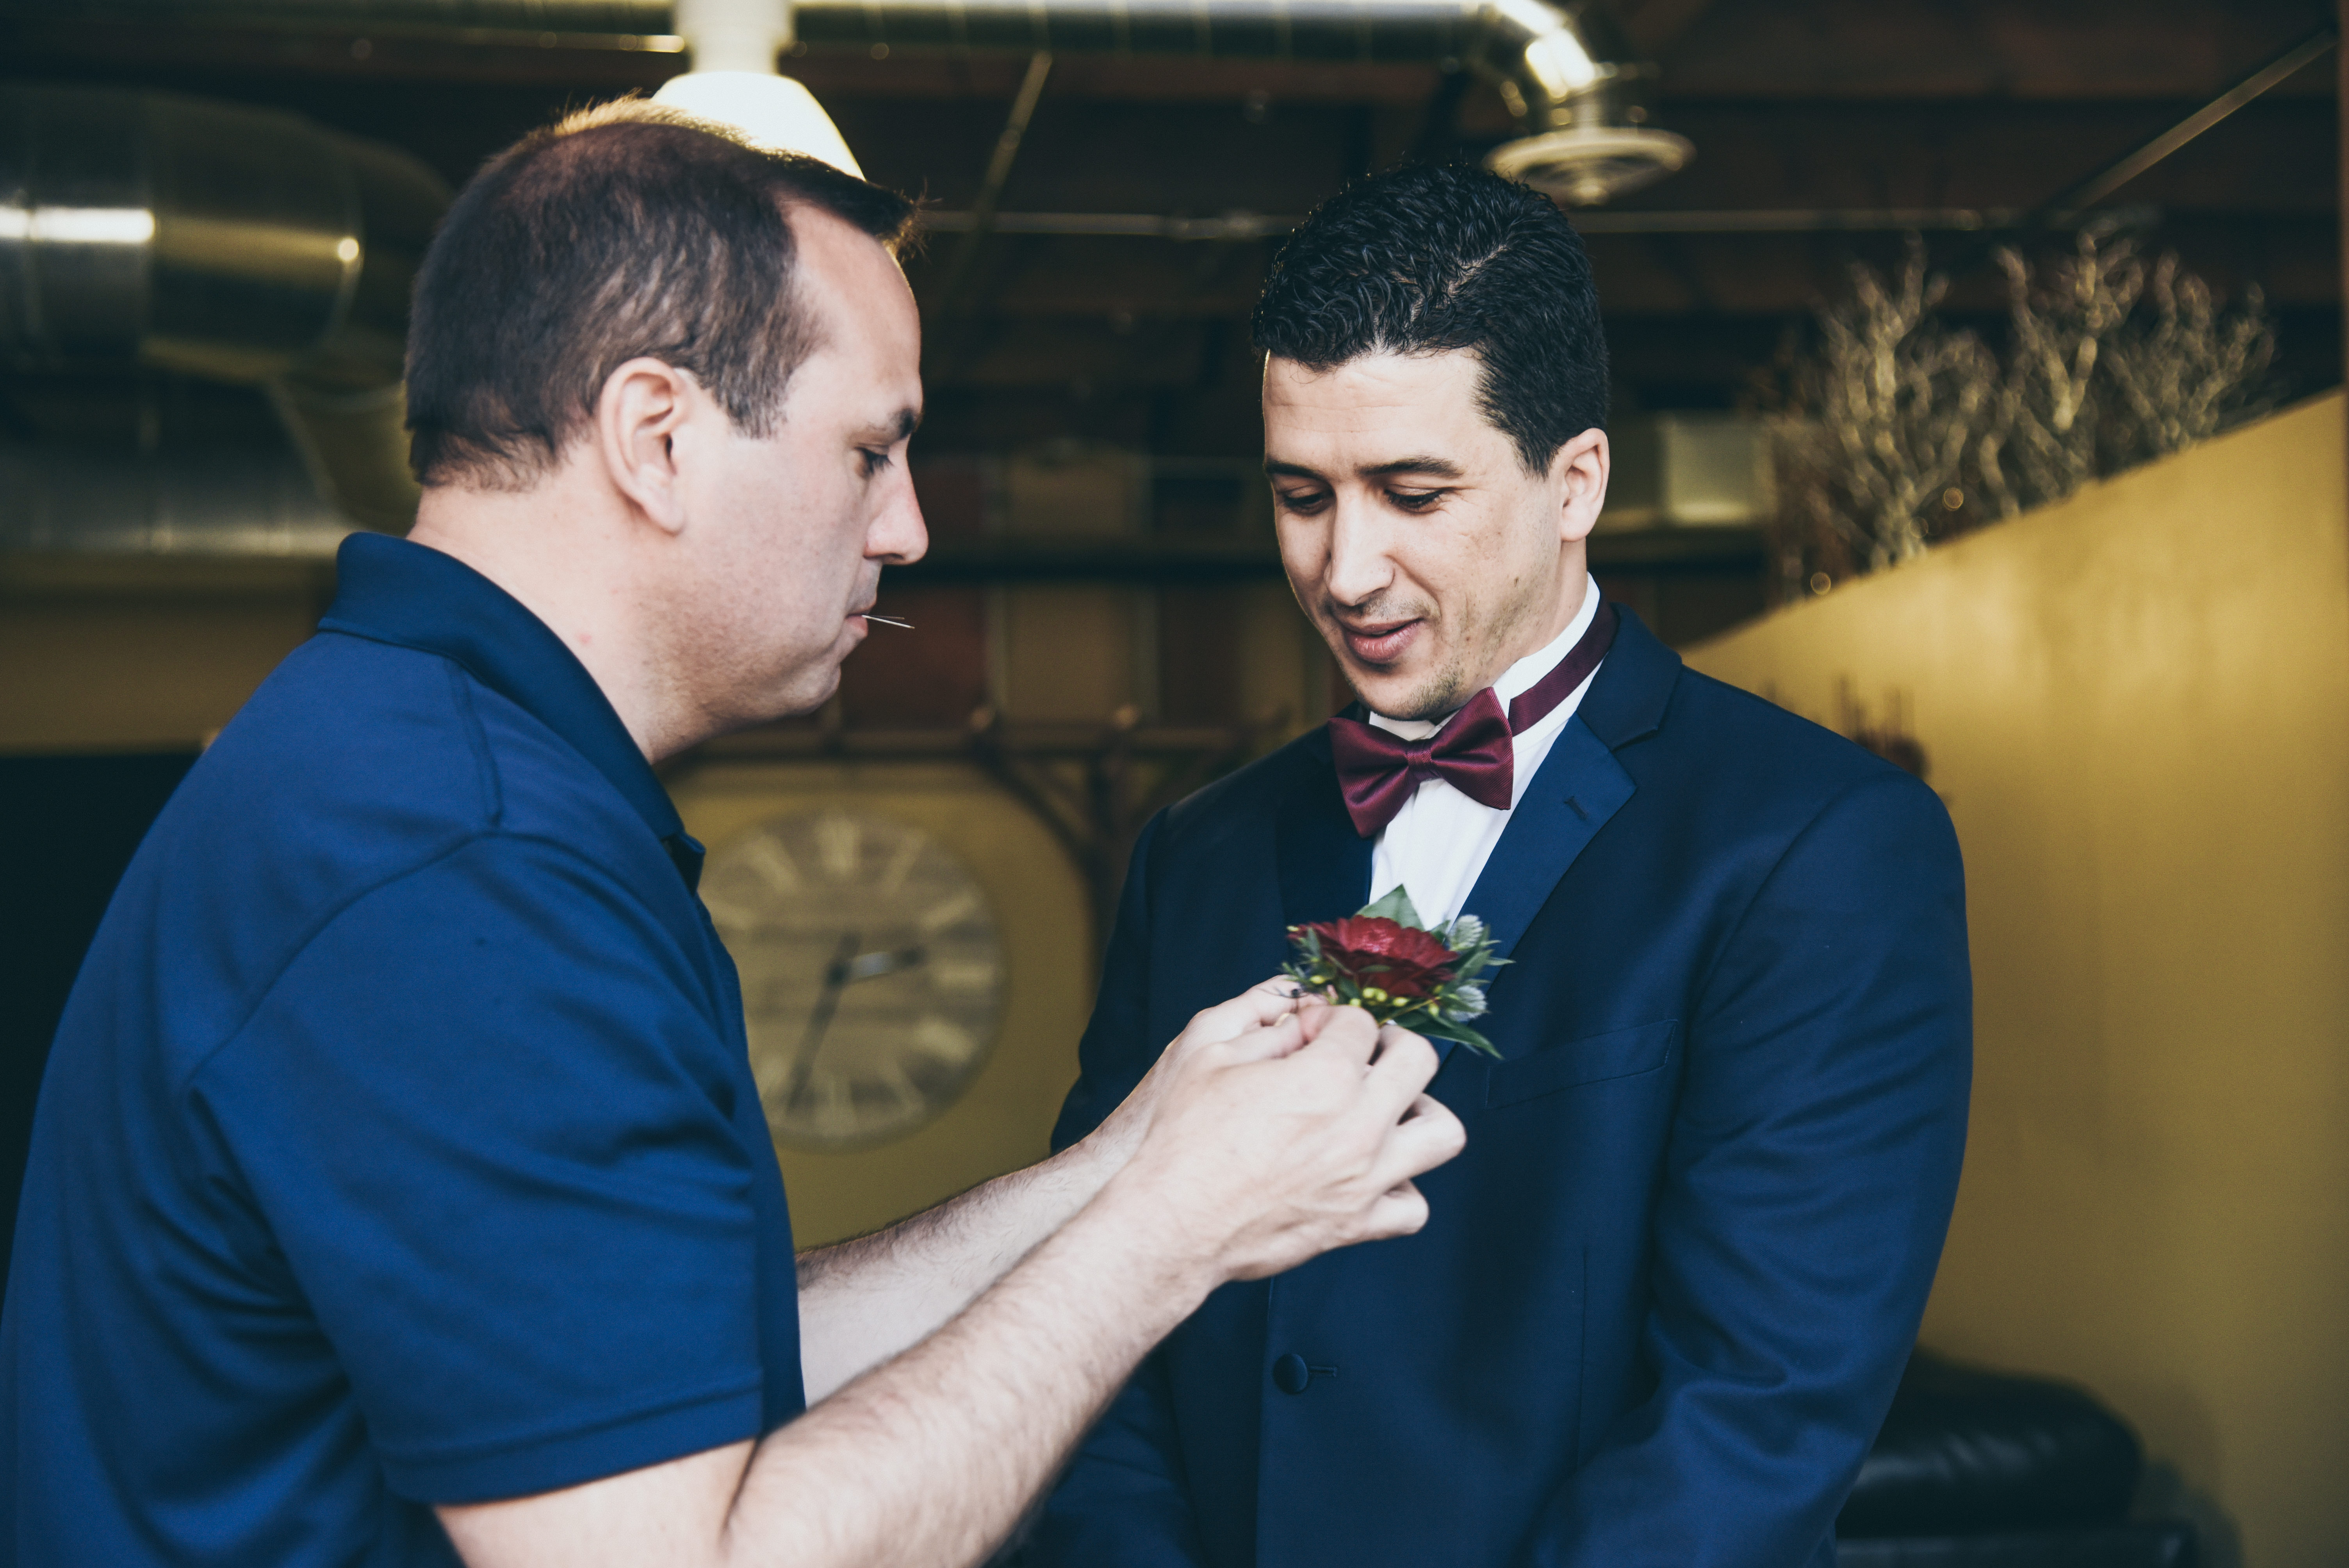 groom in a navy tux having his flower pinned on